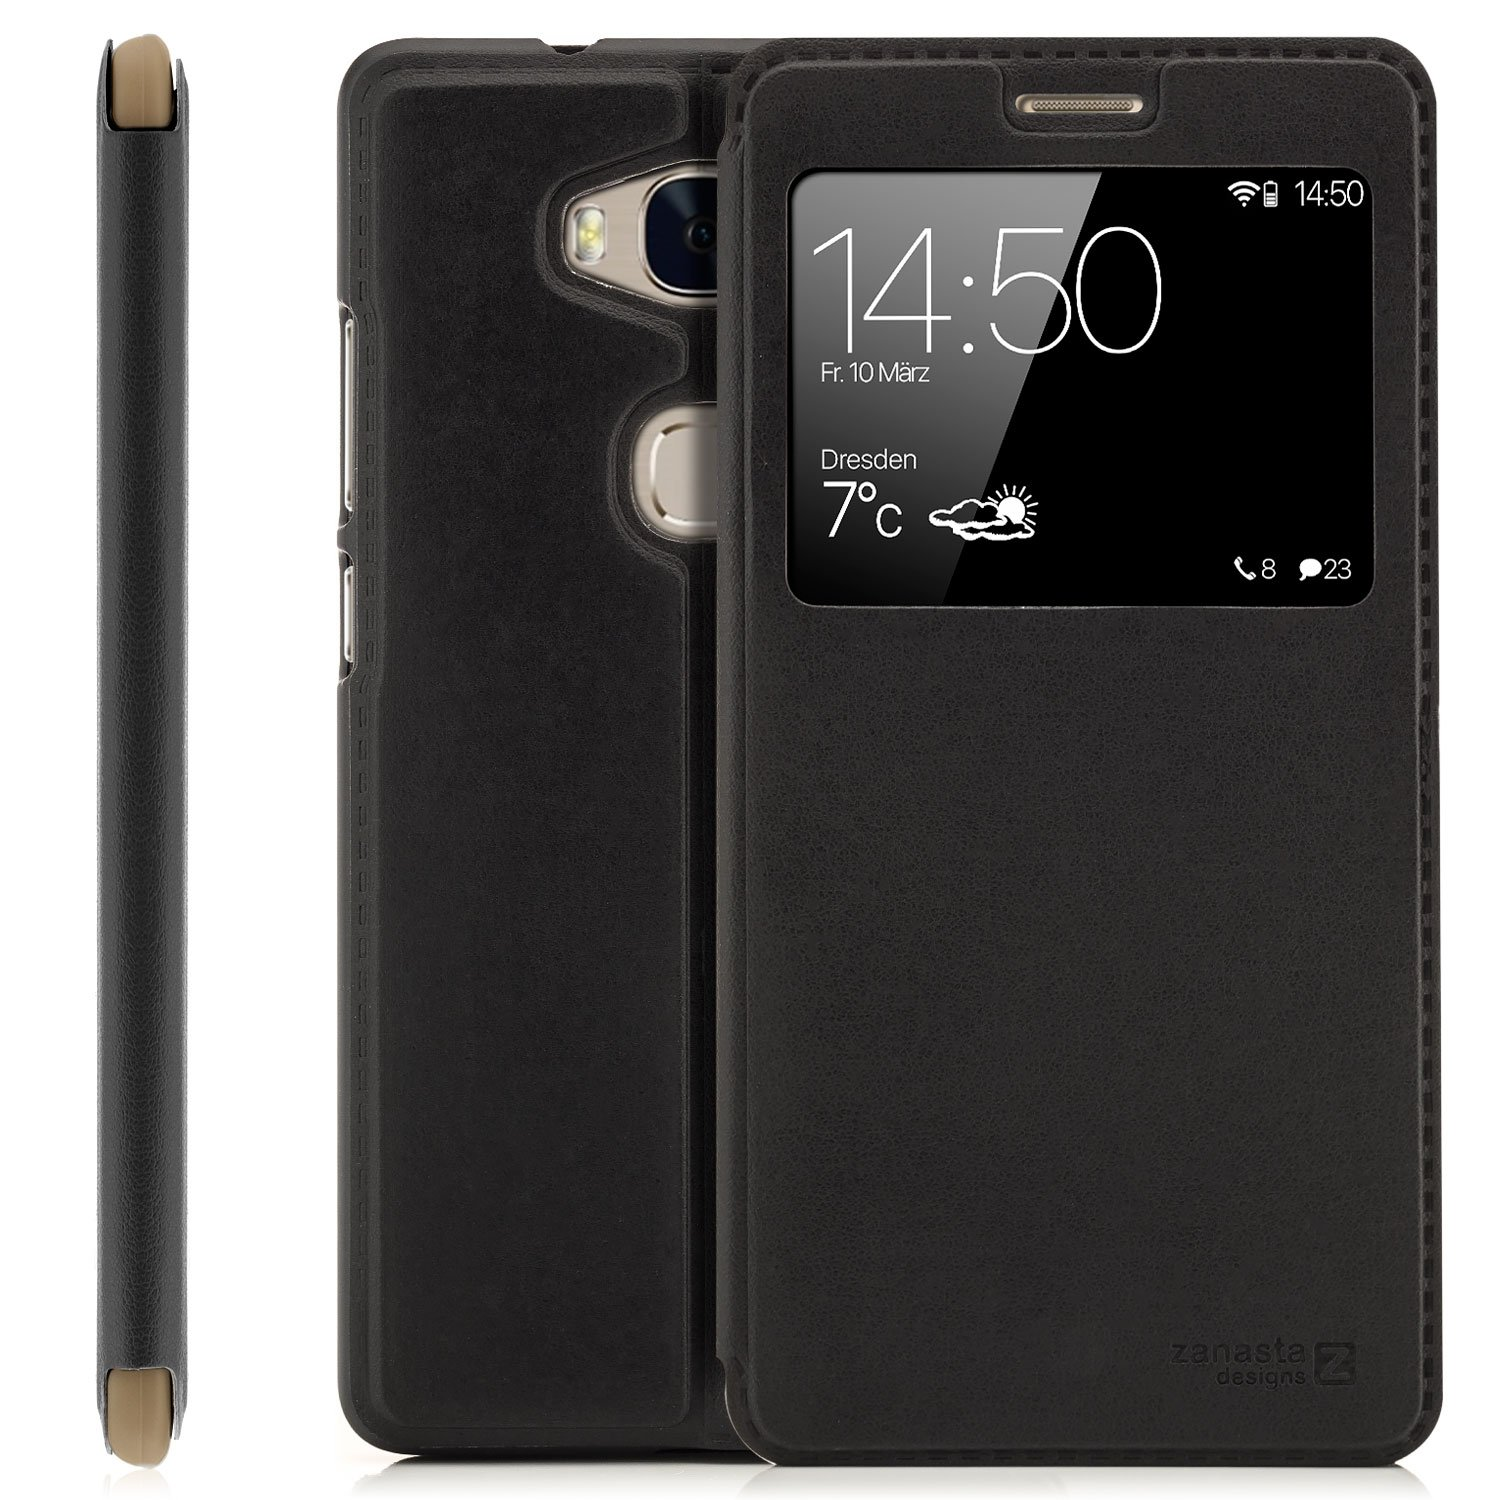 Huawei Honor 8 (FRD-L09,FRD-L19,FRD-L04) Case Protector Flip Cover [Zanasta Designs] Phone Wallet / View Flip Case with Window, High Quality Premium [Slim Profile] Black